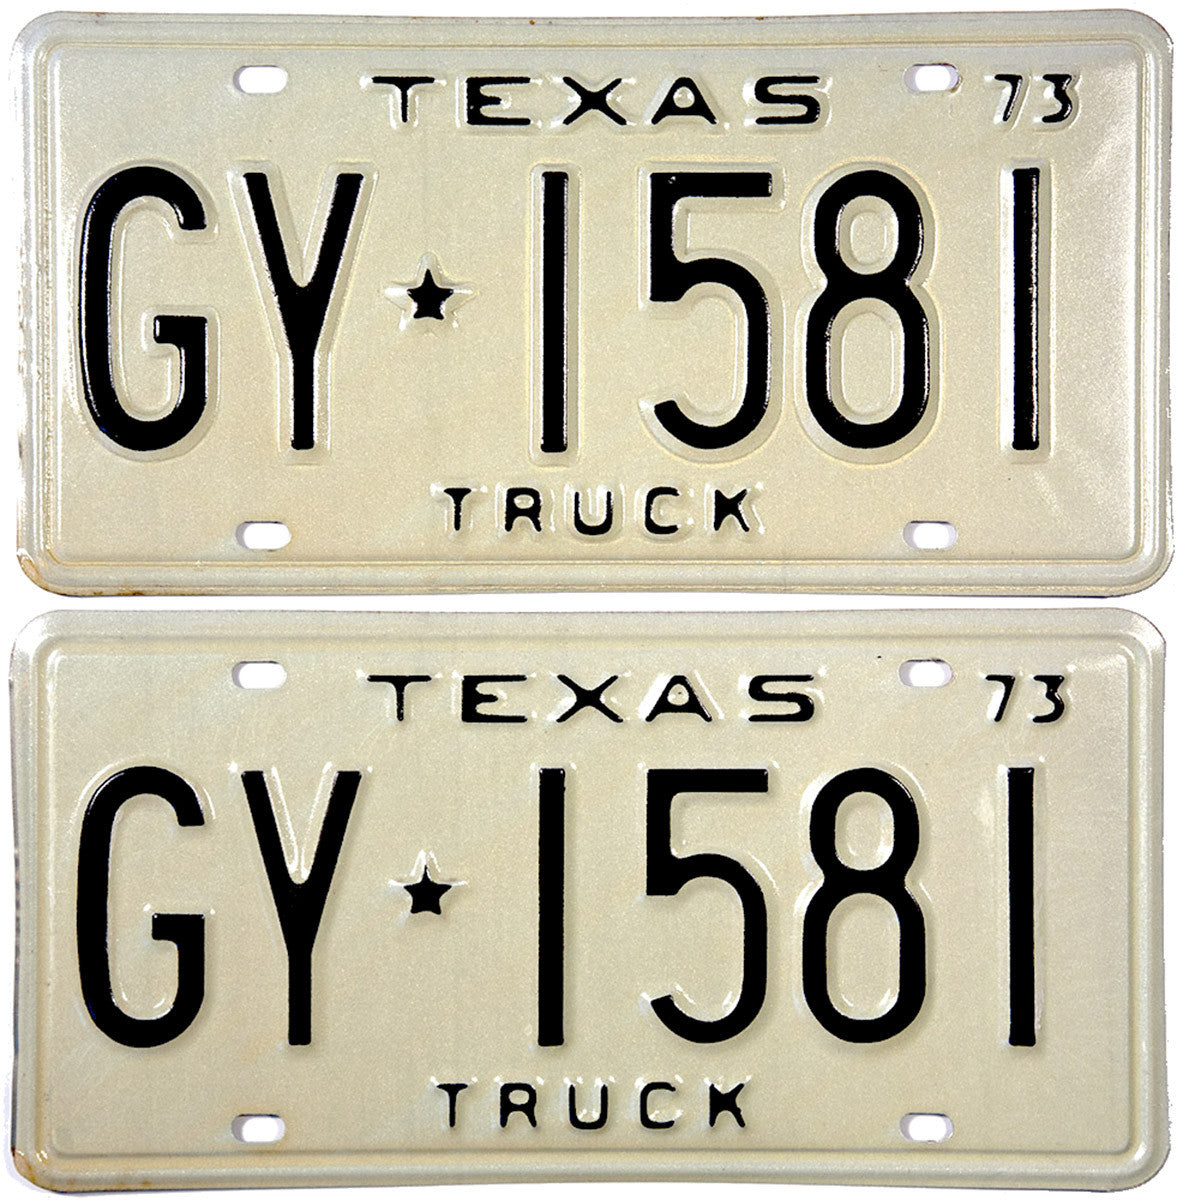 1973 Texas Truck License Plates